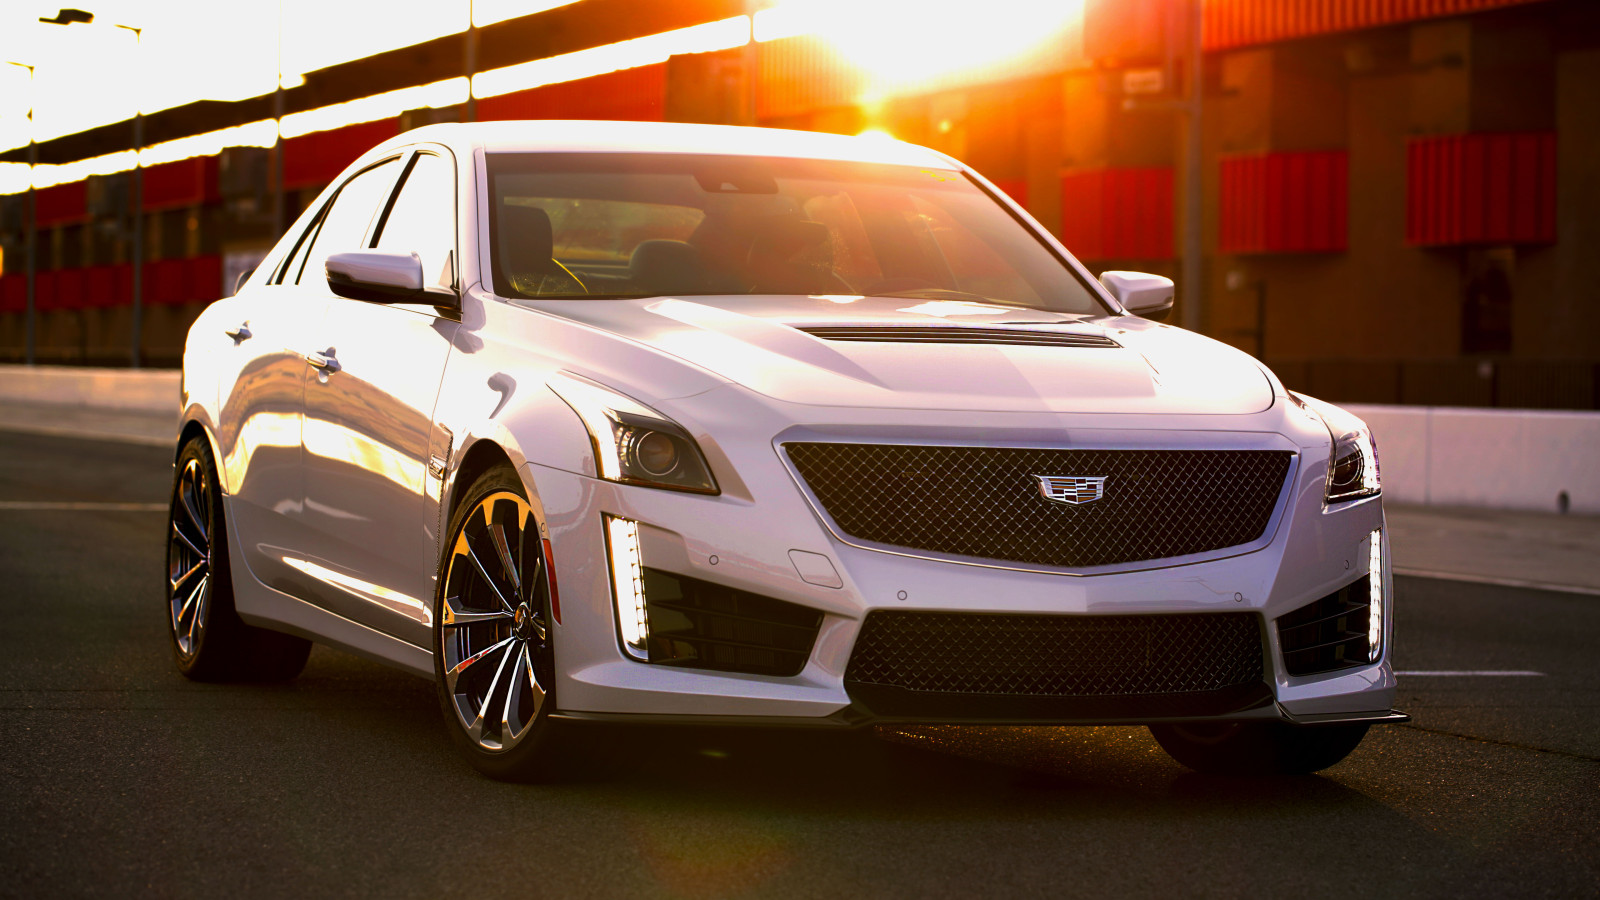 Cadillac_CLS_Sunset